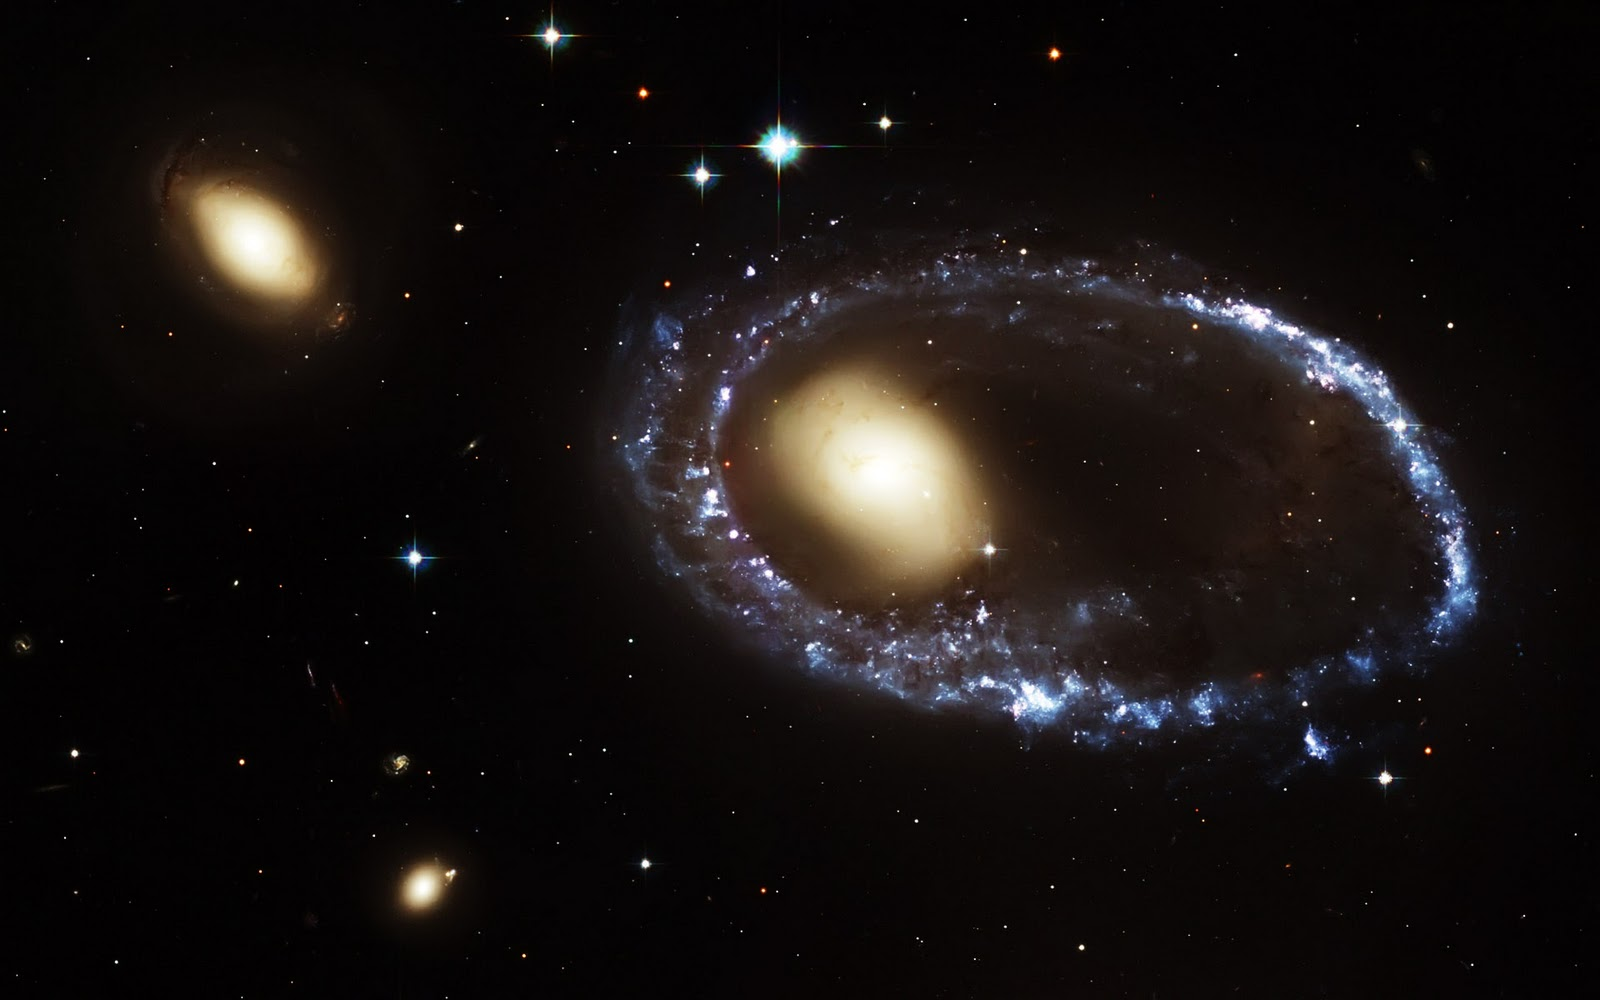 hubble telescope discoveries - photo #32